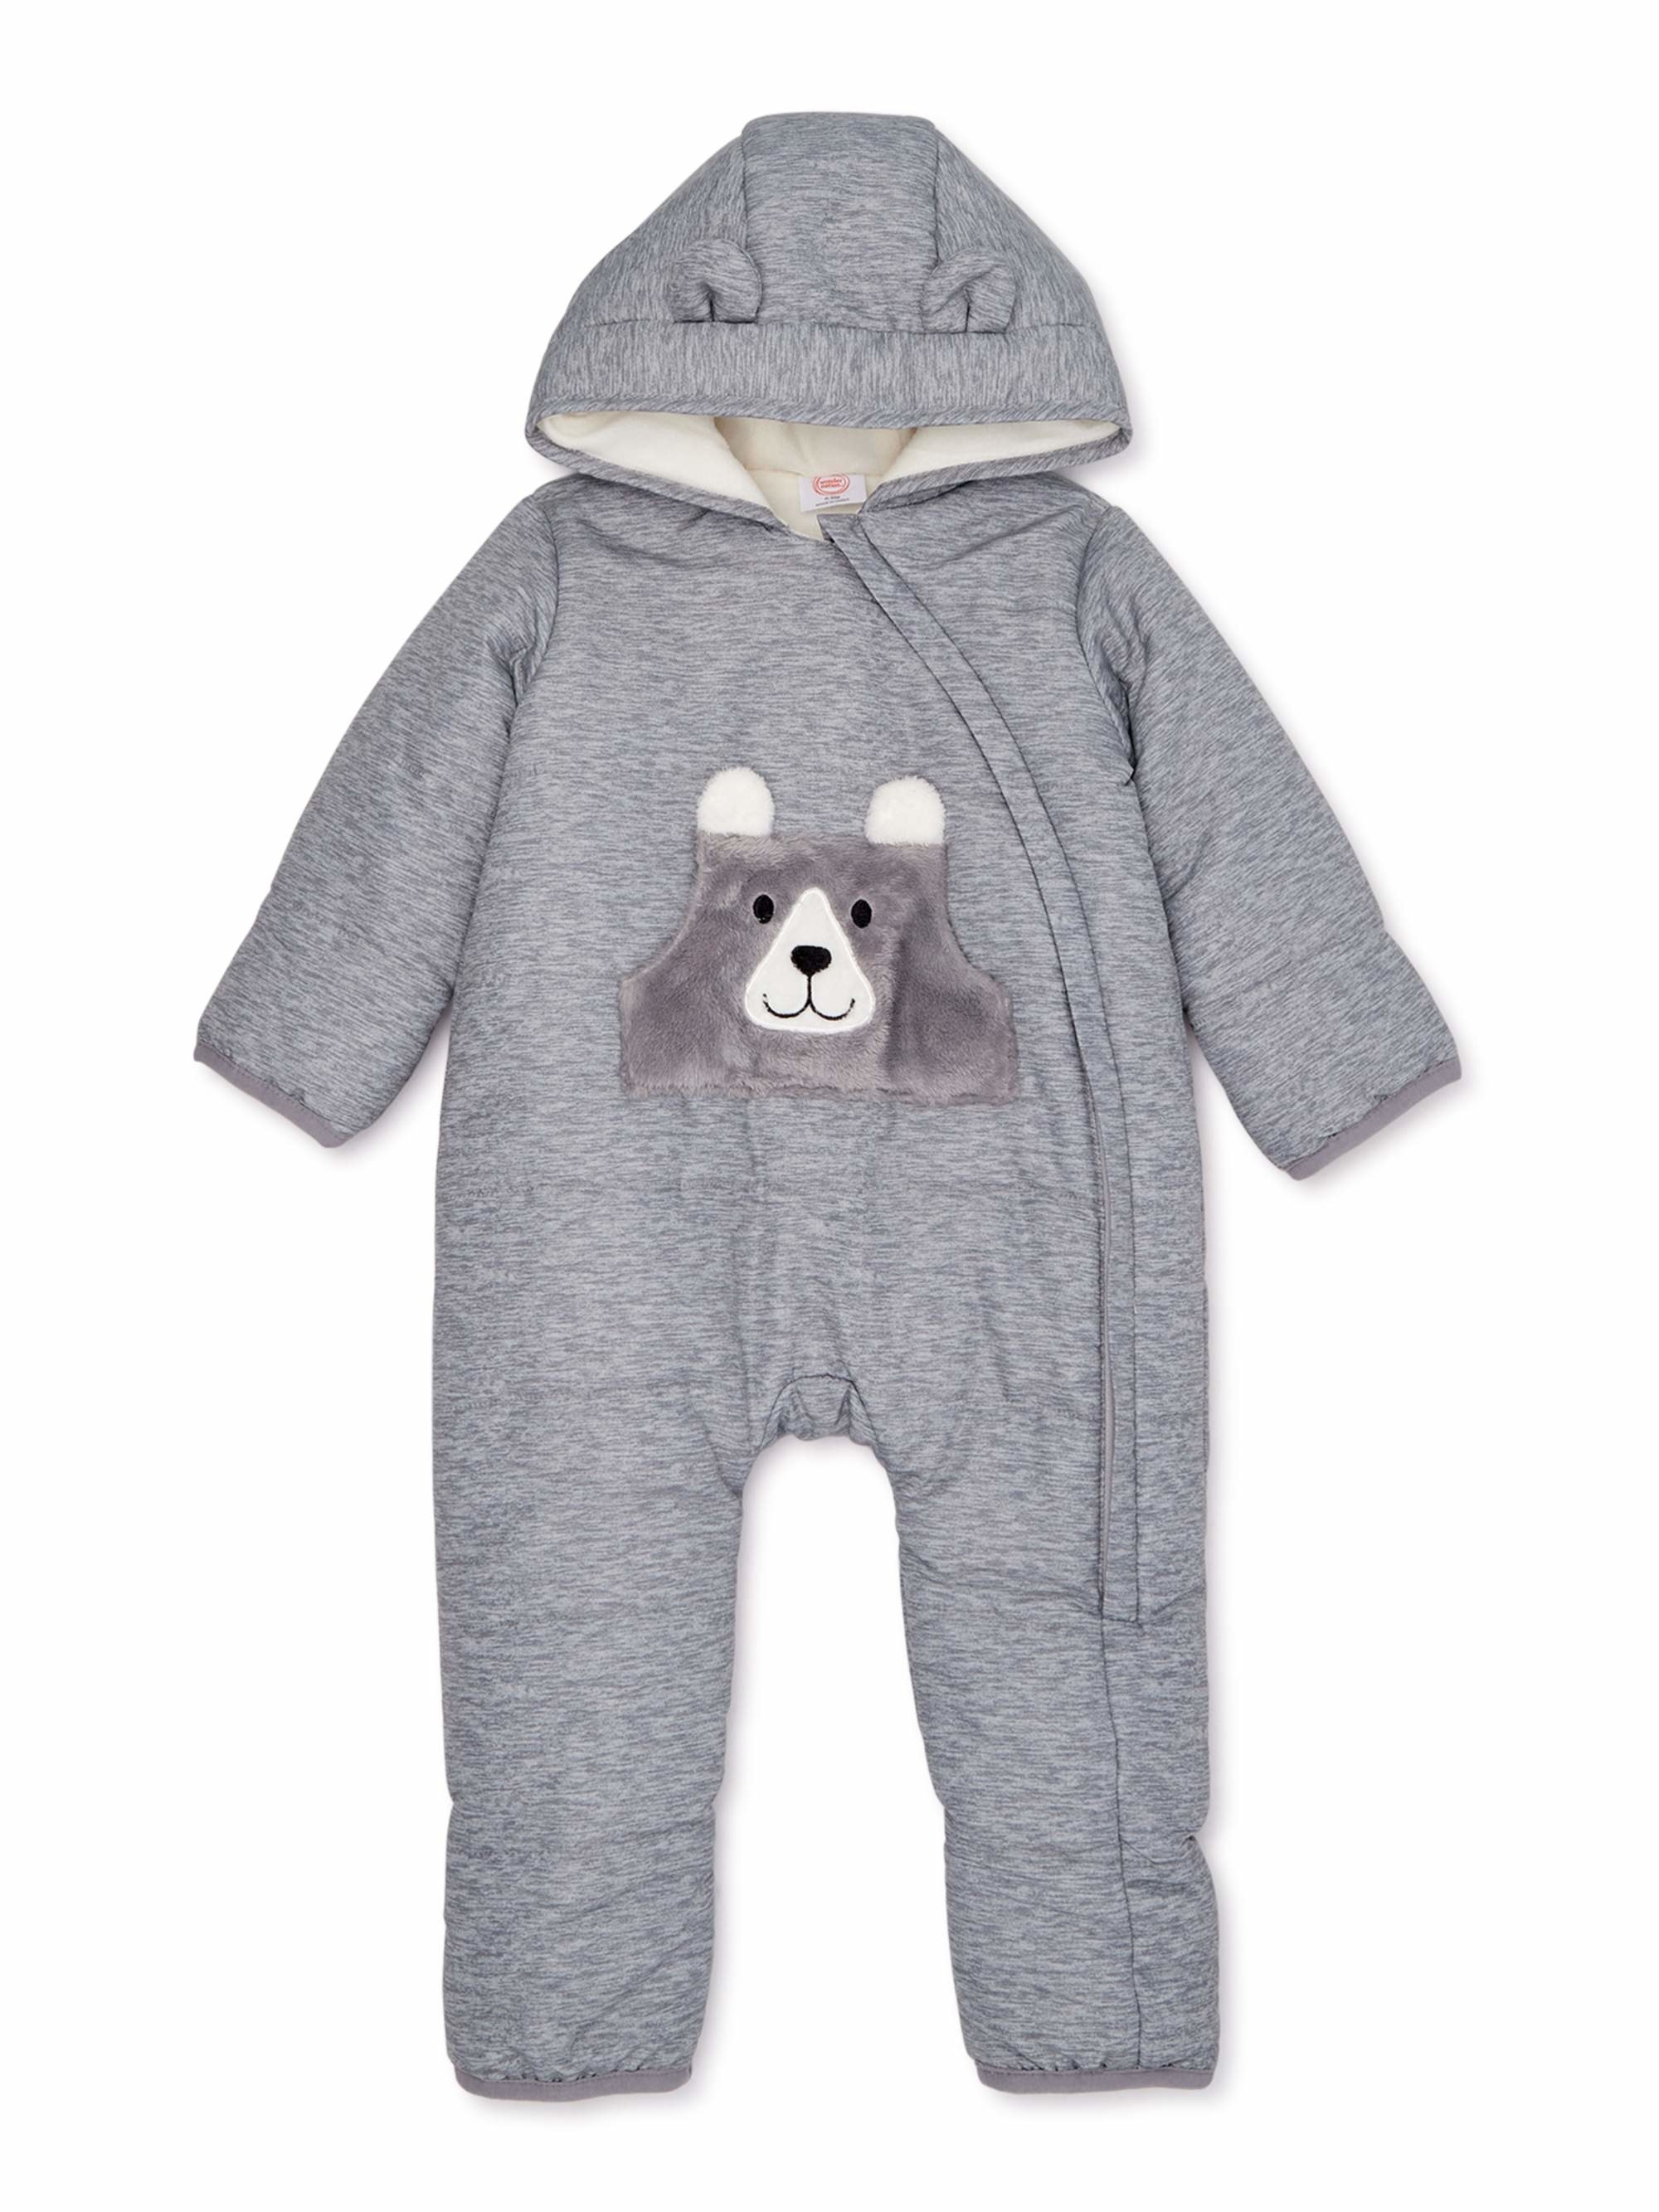 gray baby snowsuit with a bear on the front